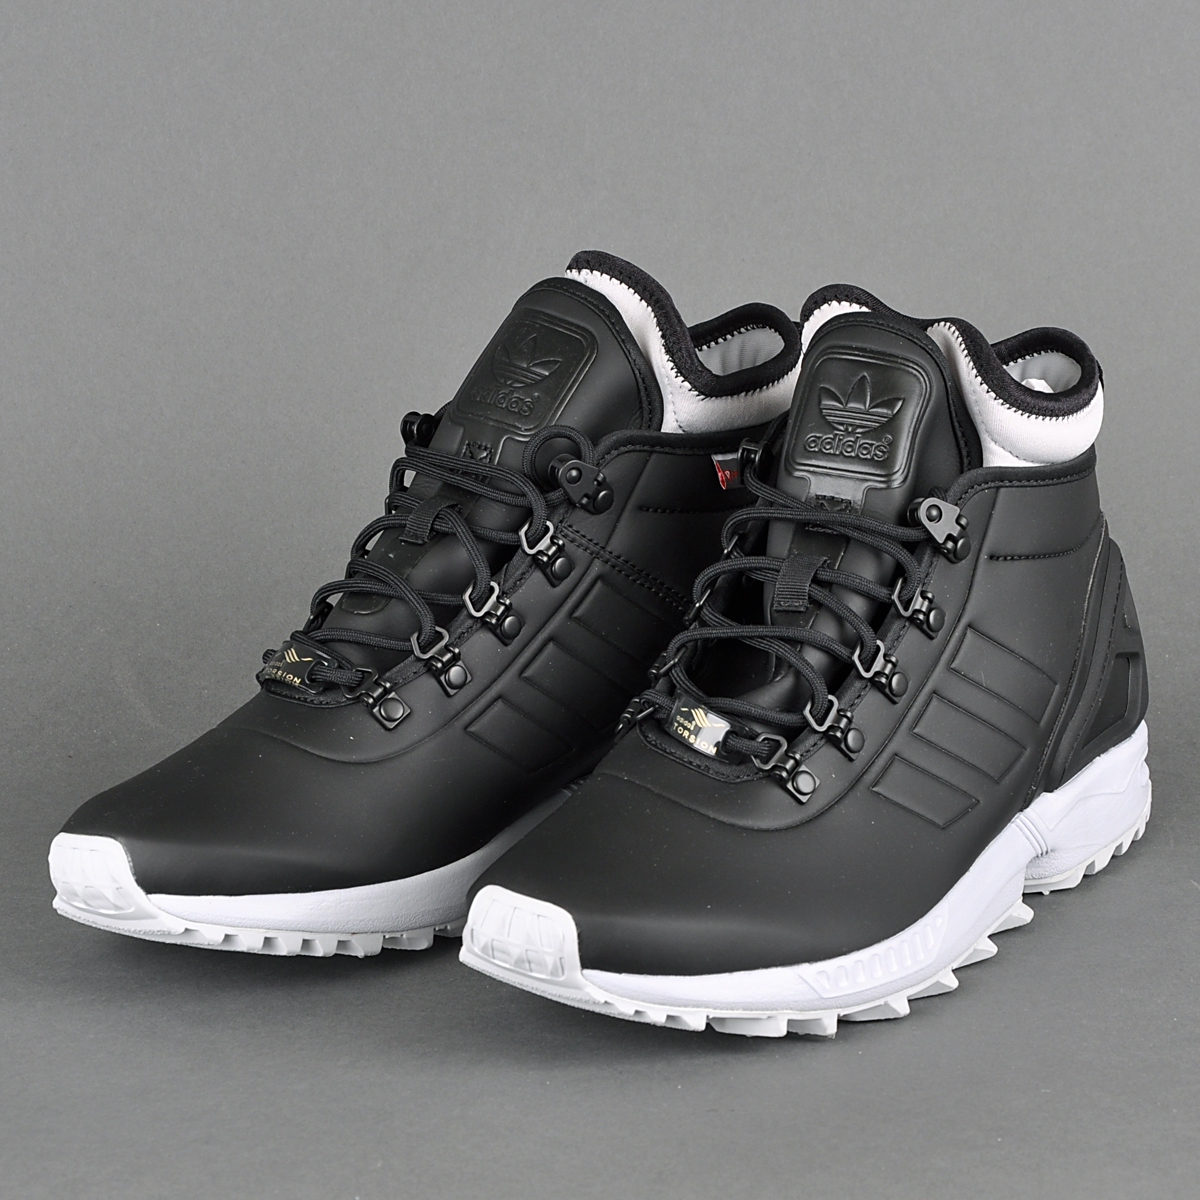 adidas zx flux winter core black nit. Black Bedroom Furniture Sets. Home Design Ideas